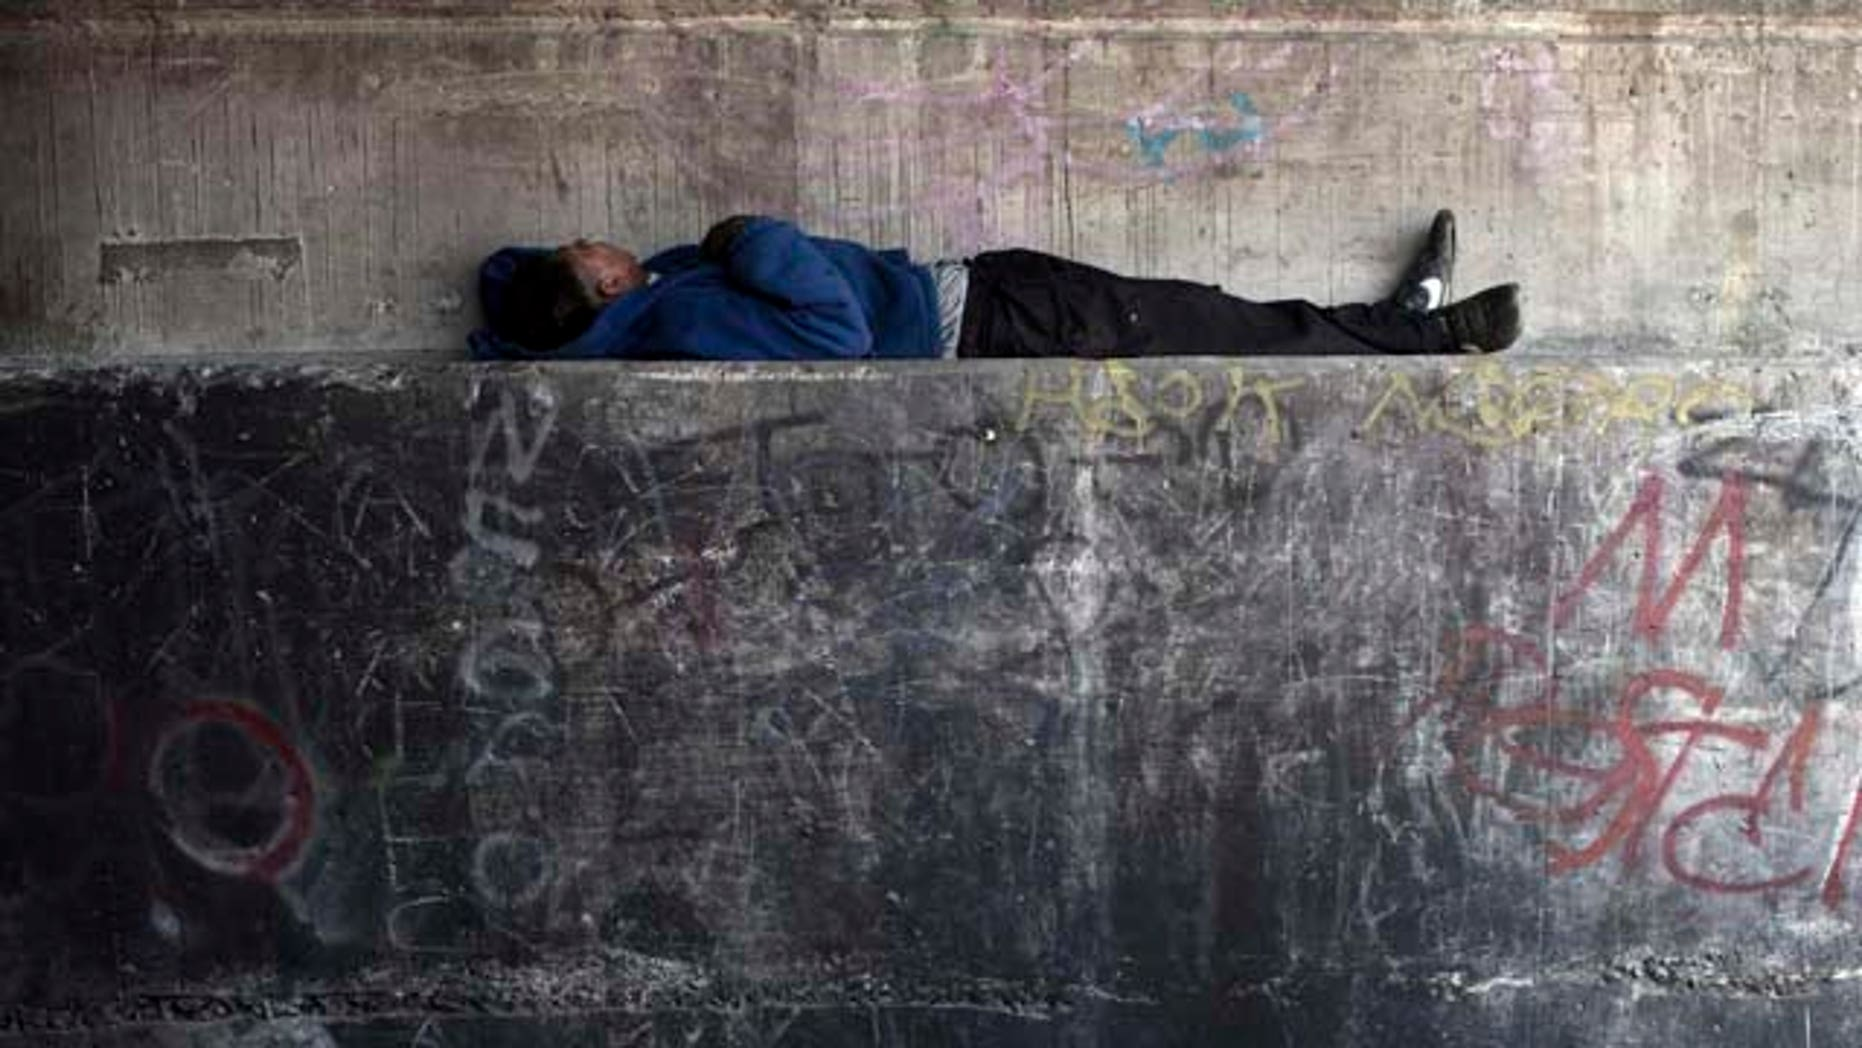 In this photo taken June 22, 2011, a homeless men tries to rest inside a Tijuana River canal, in Tijuana, Mexico. During the day, deportees who find themselves in Tijuana look for work and flee Mexican police, who will jail them for not having papers, just like in the U.S. At night they take refuge in the canals, beneath bridges or in shacks, among drug addicts and people with mental health problems; a few feet from the rusty barrier that separates the country of their birth from the country where they worked years for a better life.  (AP Photo/Alejandro Cossio)